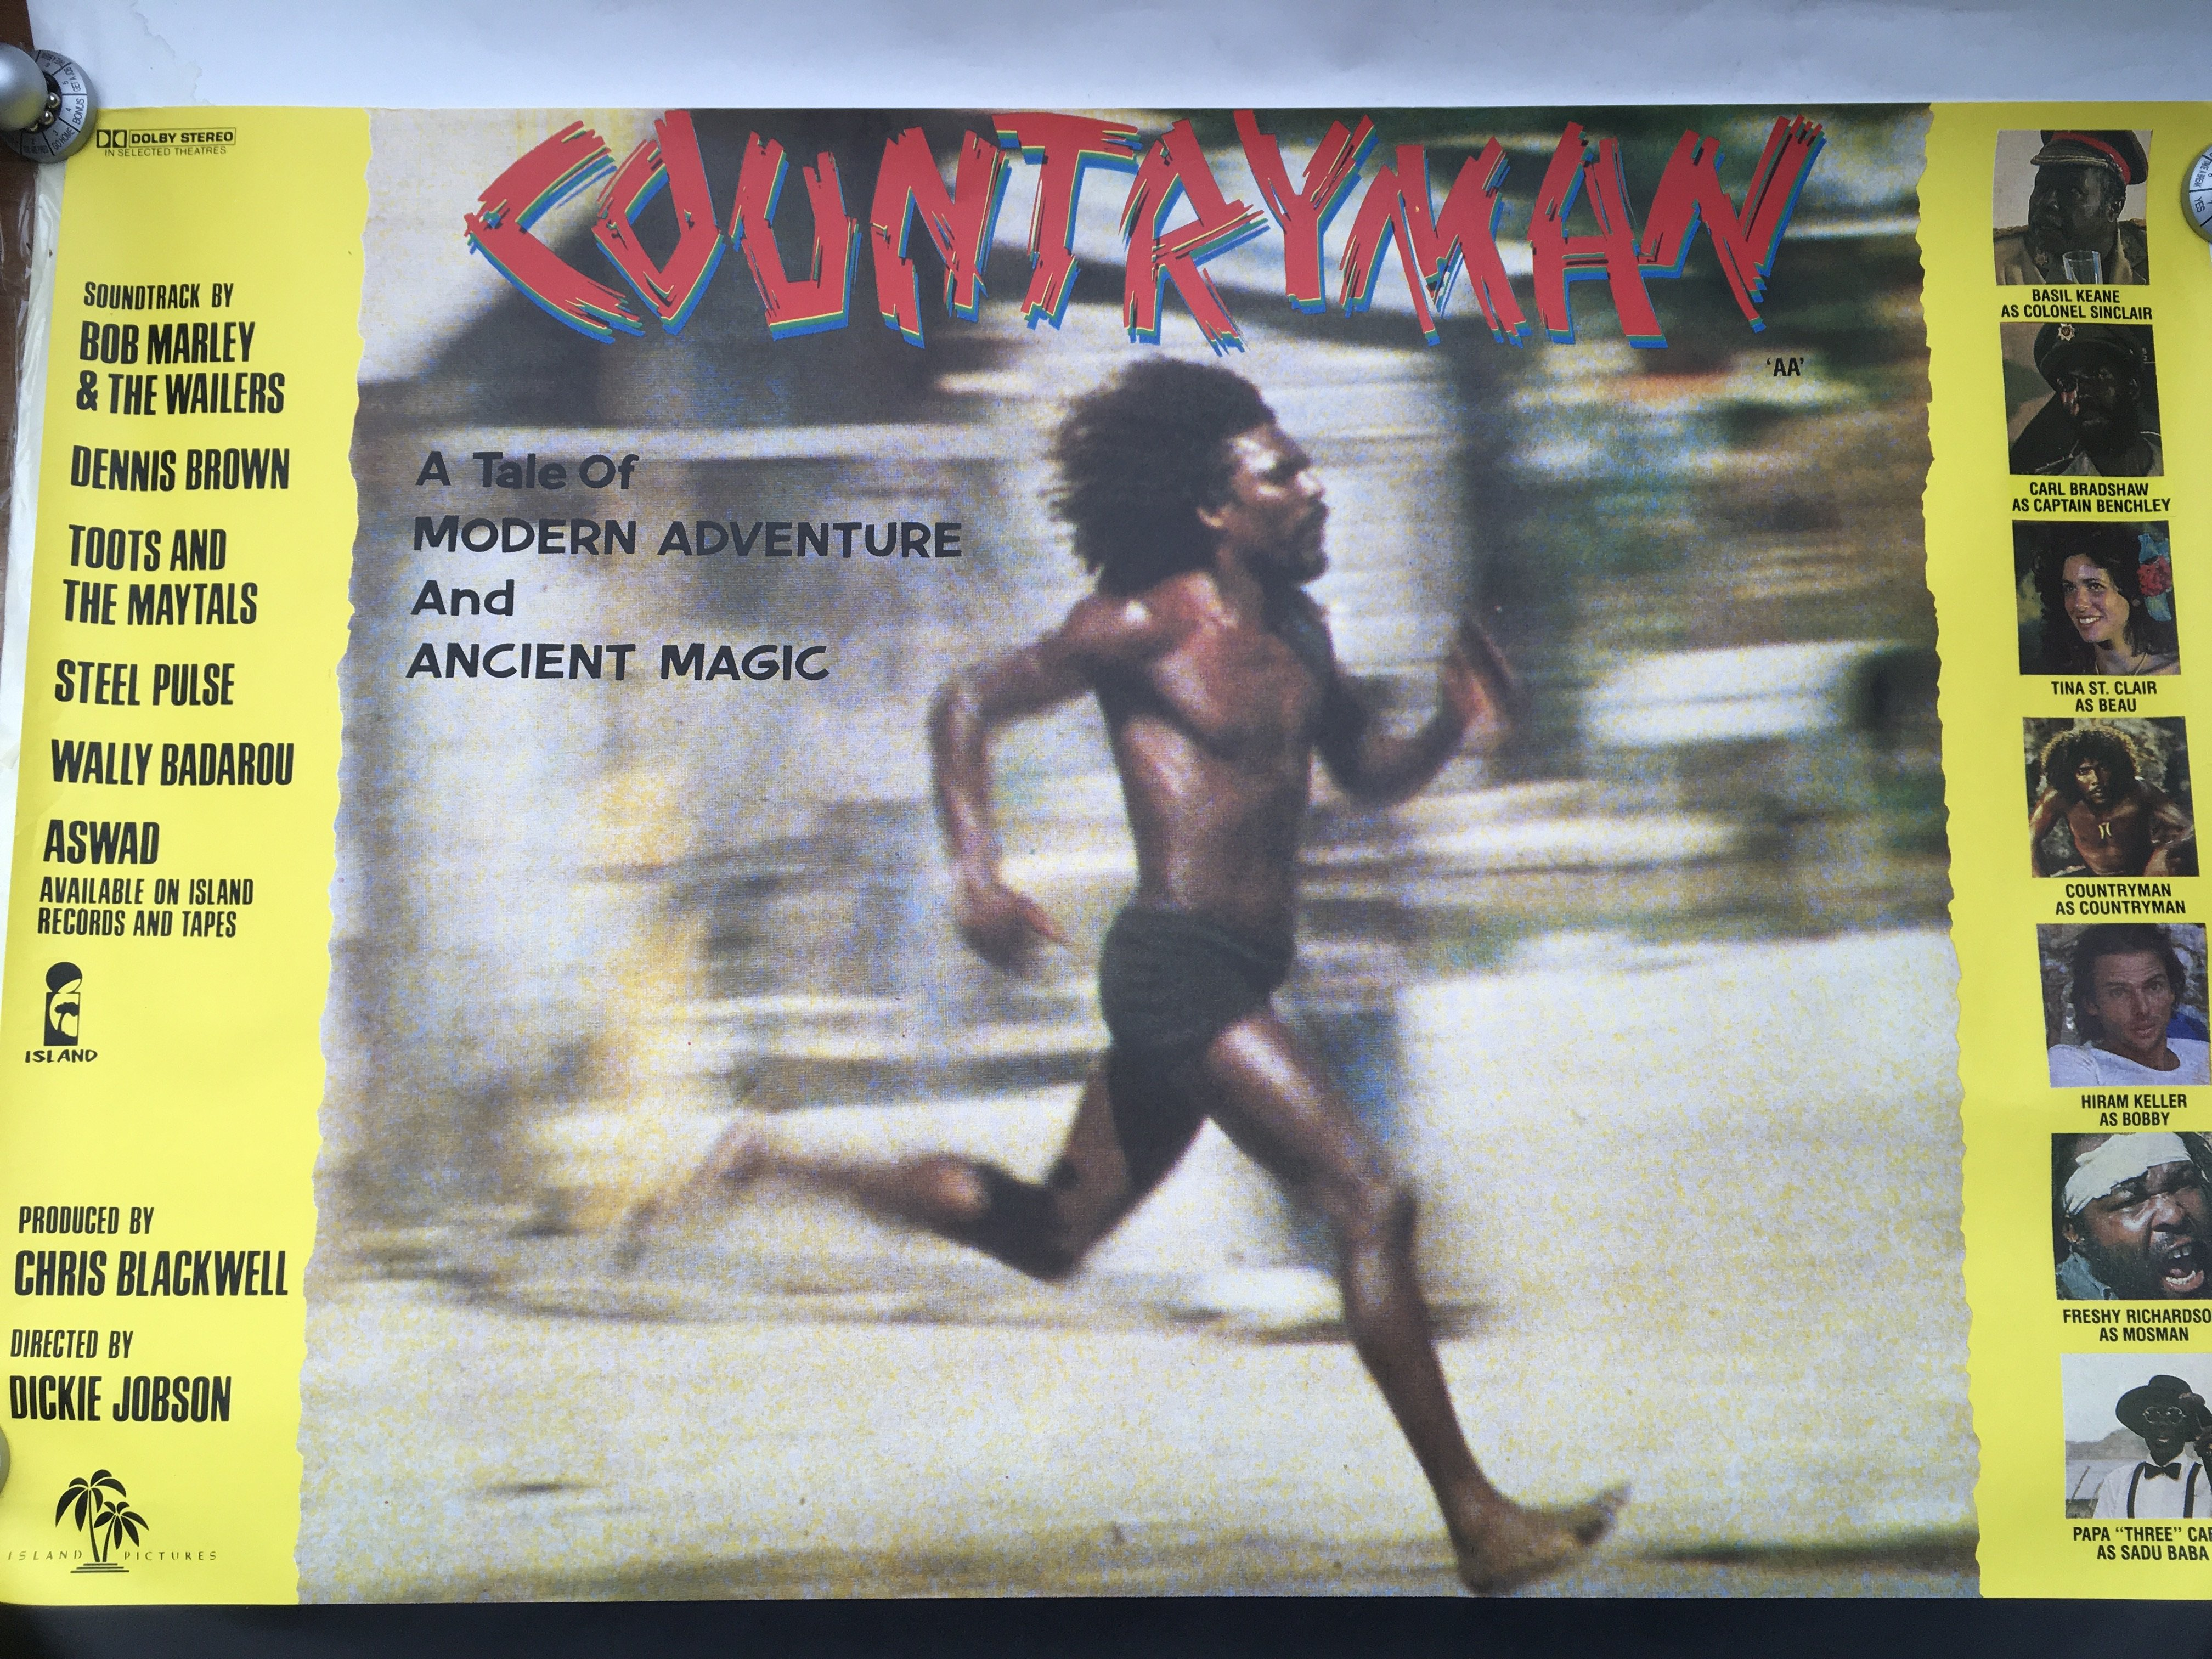 Two original reggae film posters, one for 'Country